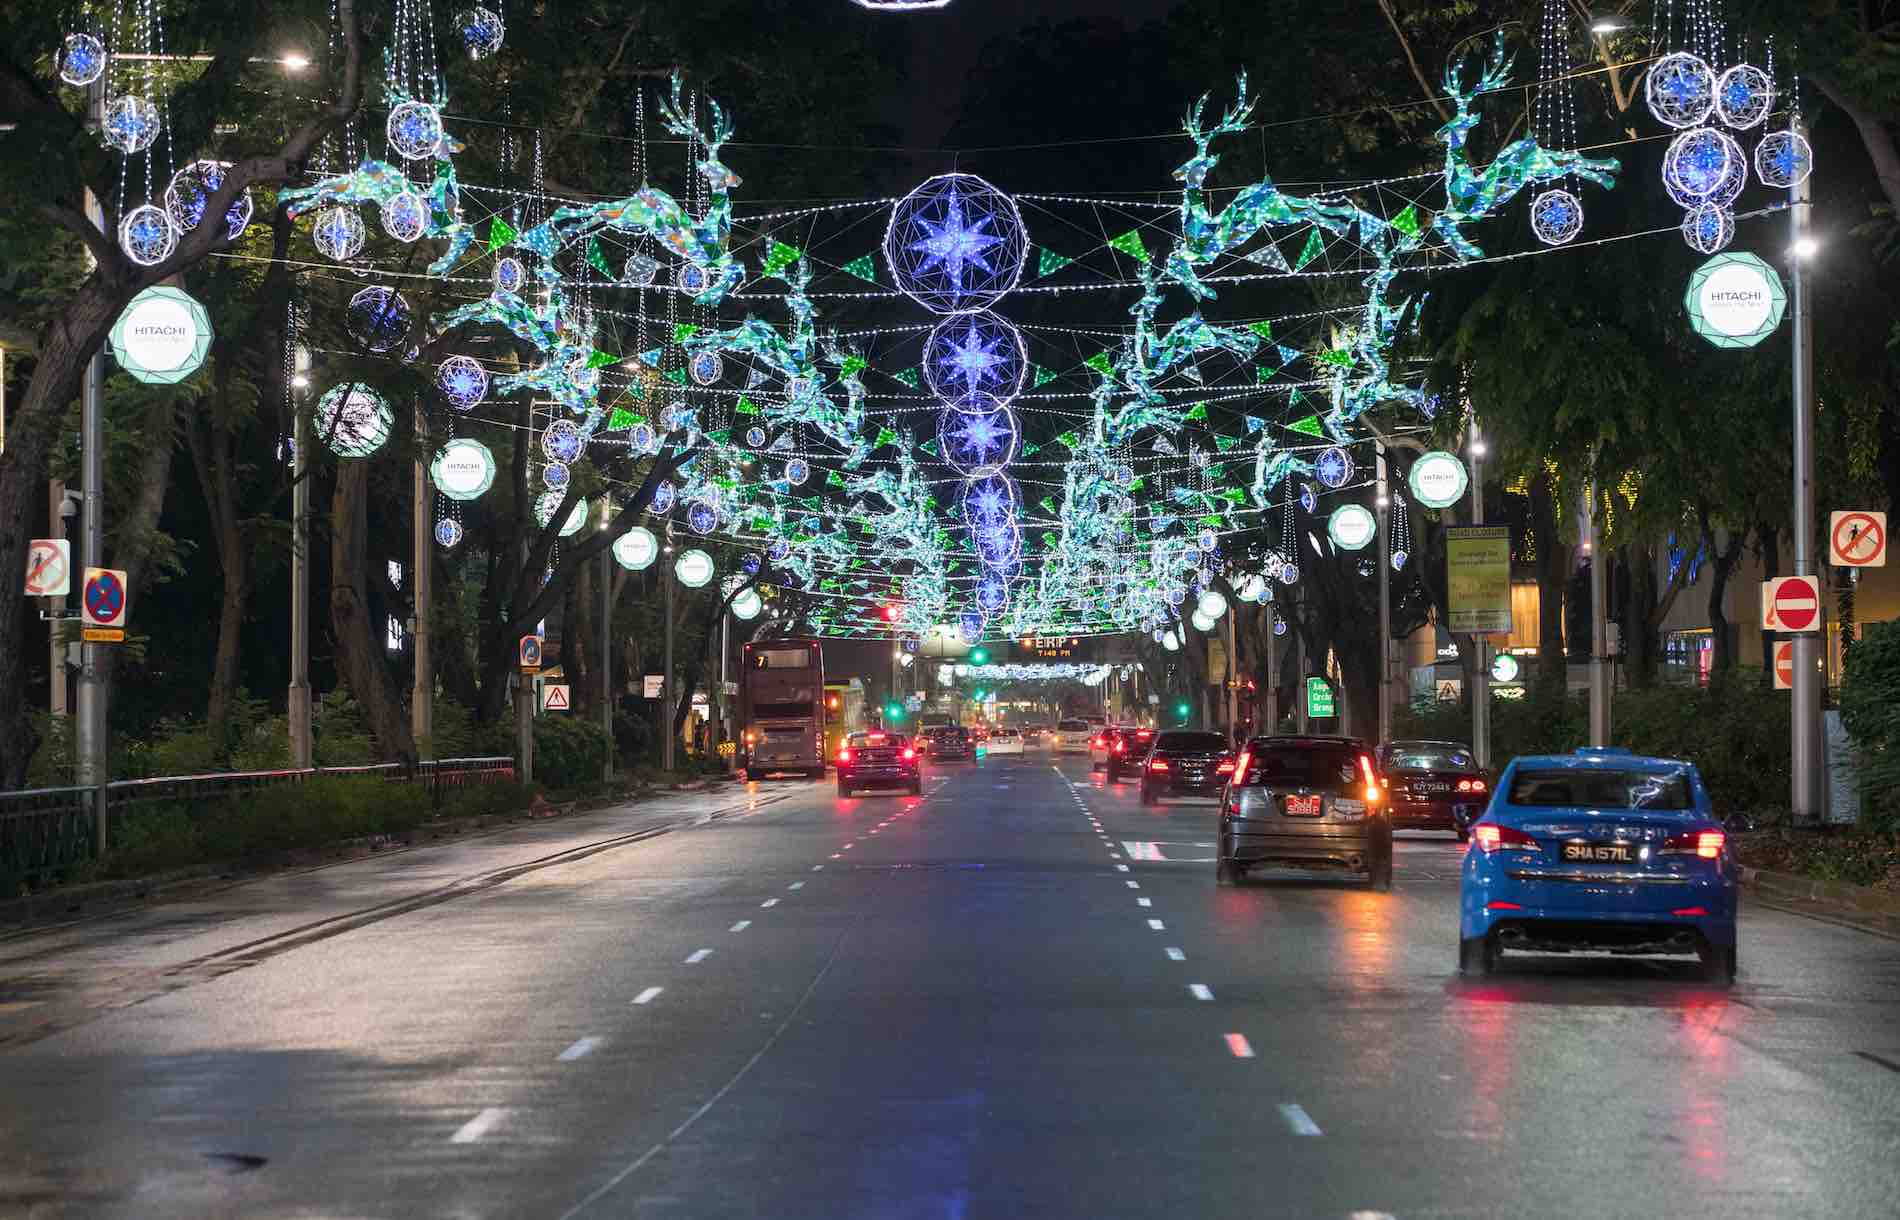 Orchard Road Festive Light Up Christmas On A Great